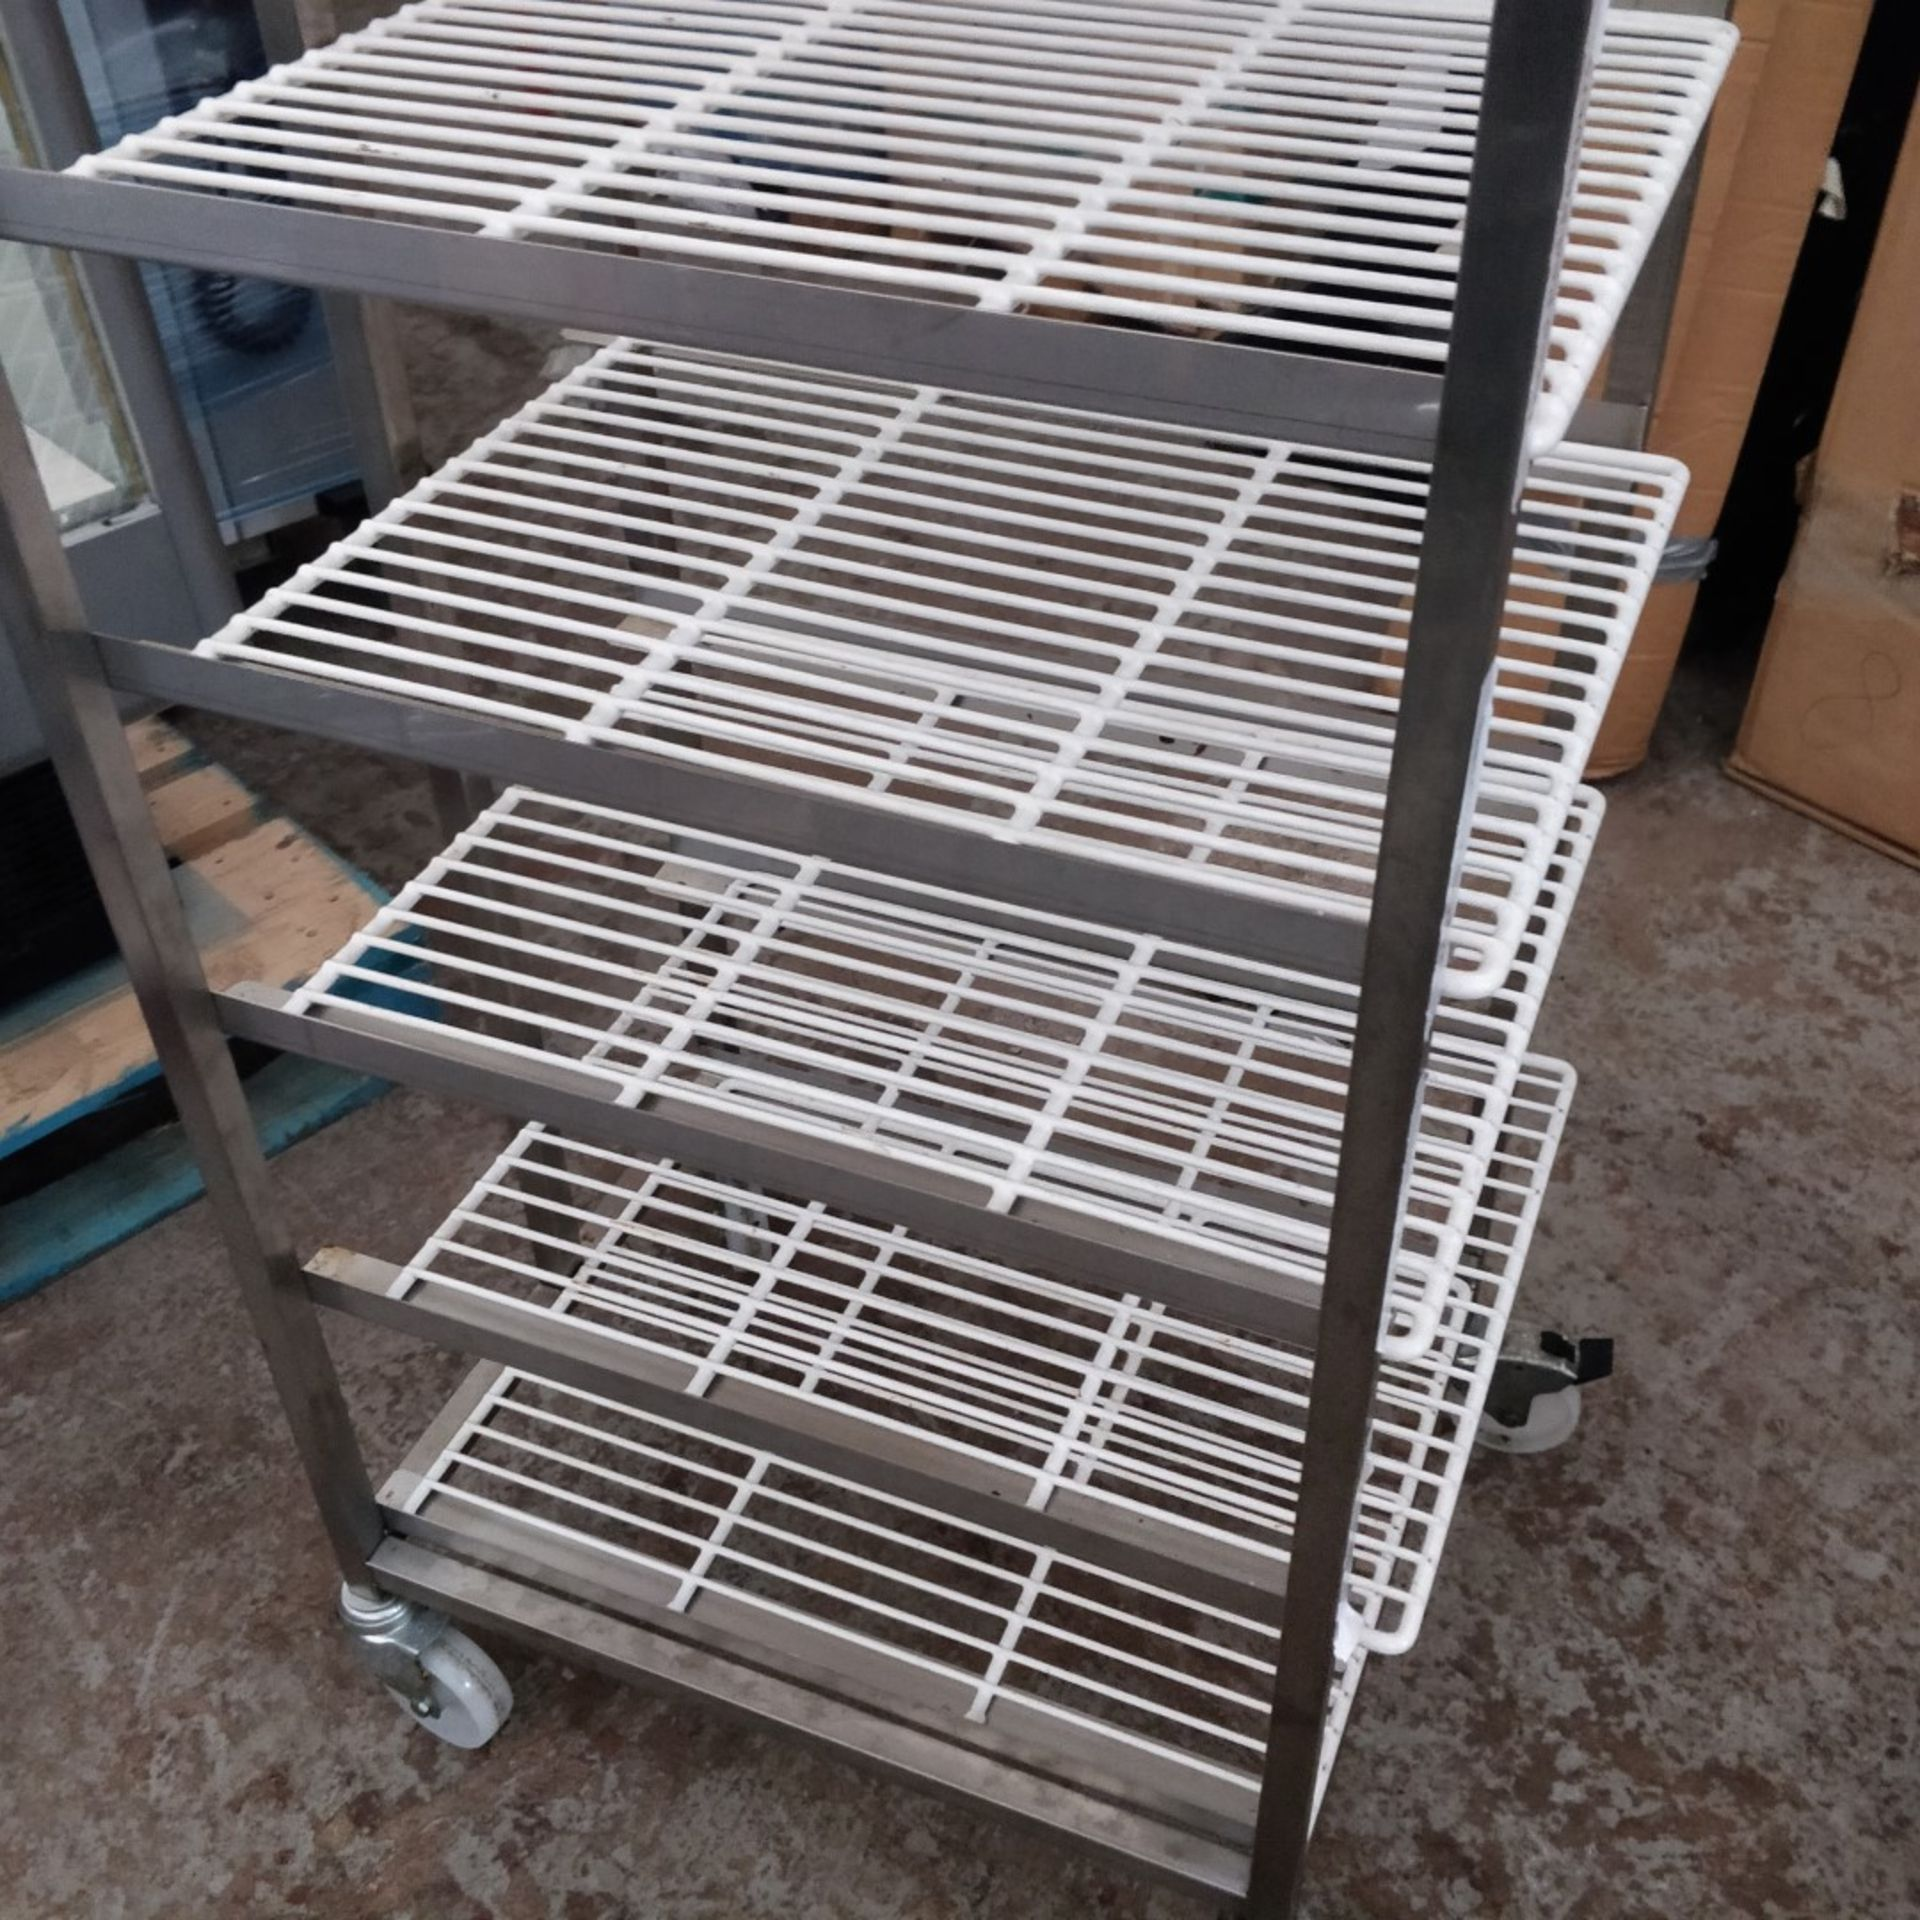 1 x Commercial Kitchen Upright Mobile Tray Rack With Eight Wire Racks - Size to Follow - Recently - Image 3 of 3